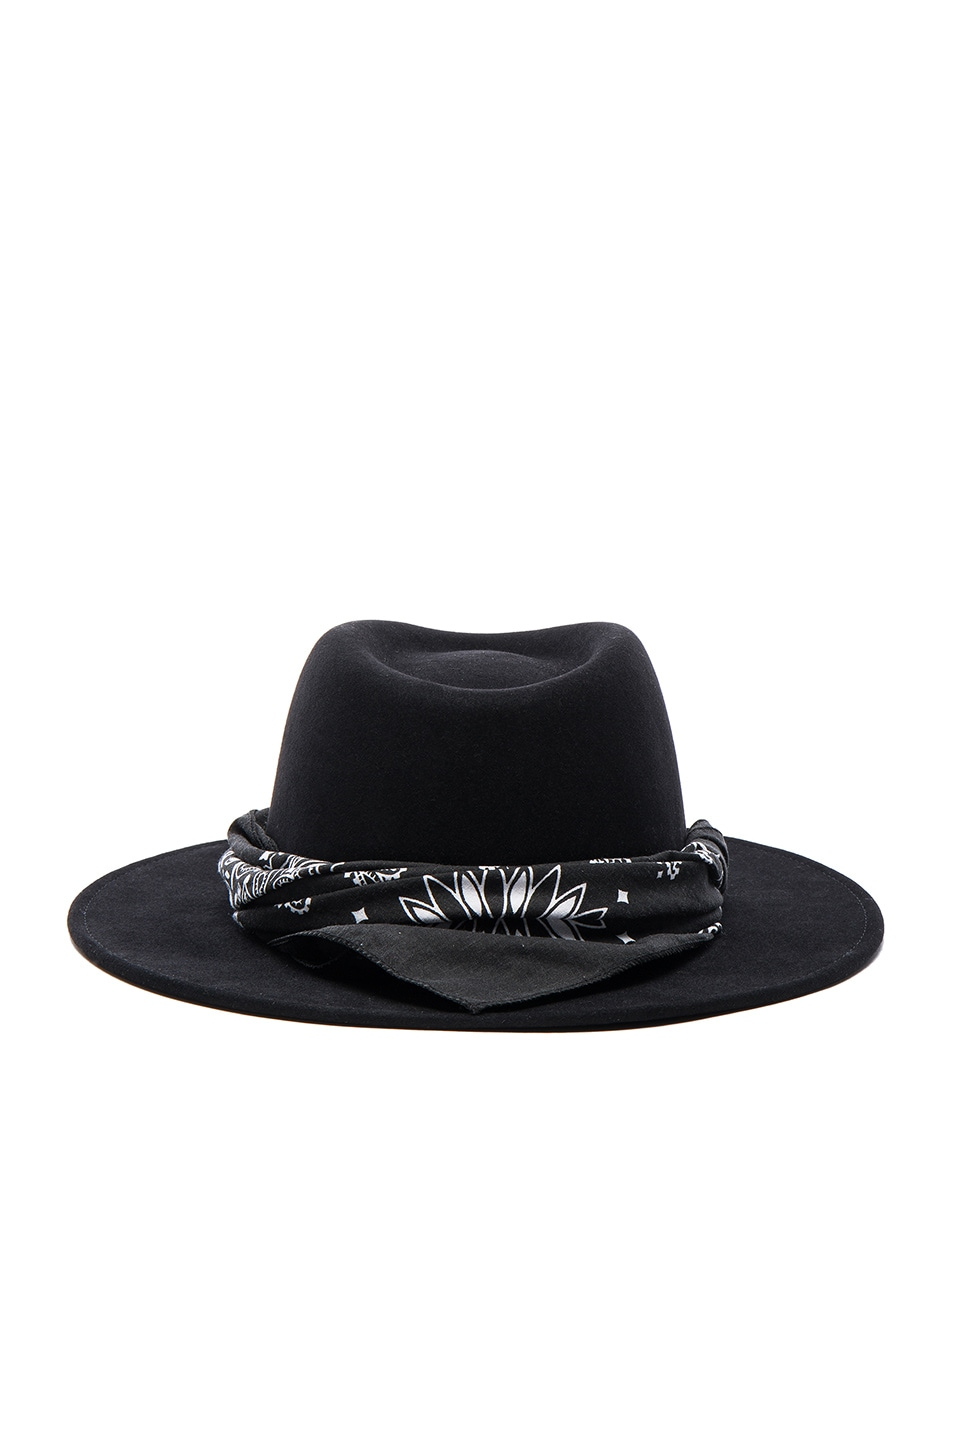 Image 5 of Maison Michel Thadee Masculine Plain Hat in Black